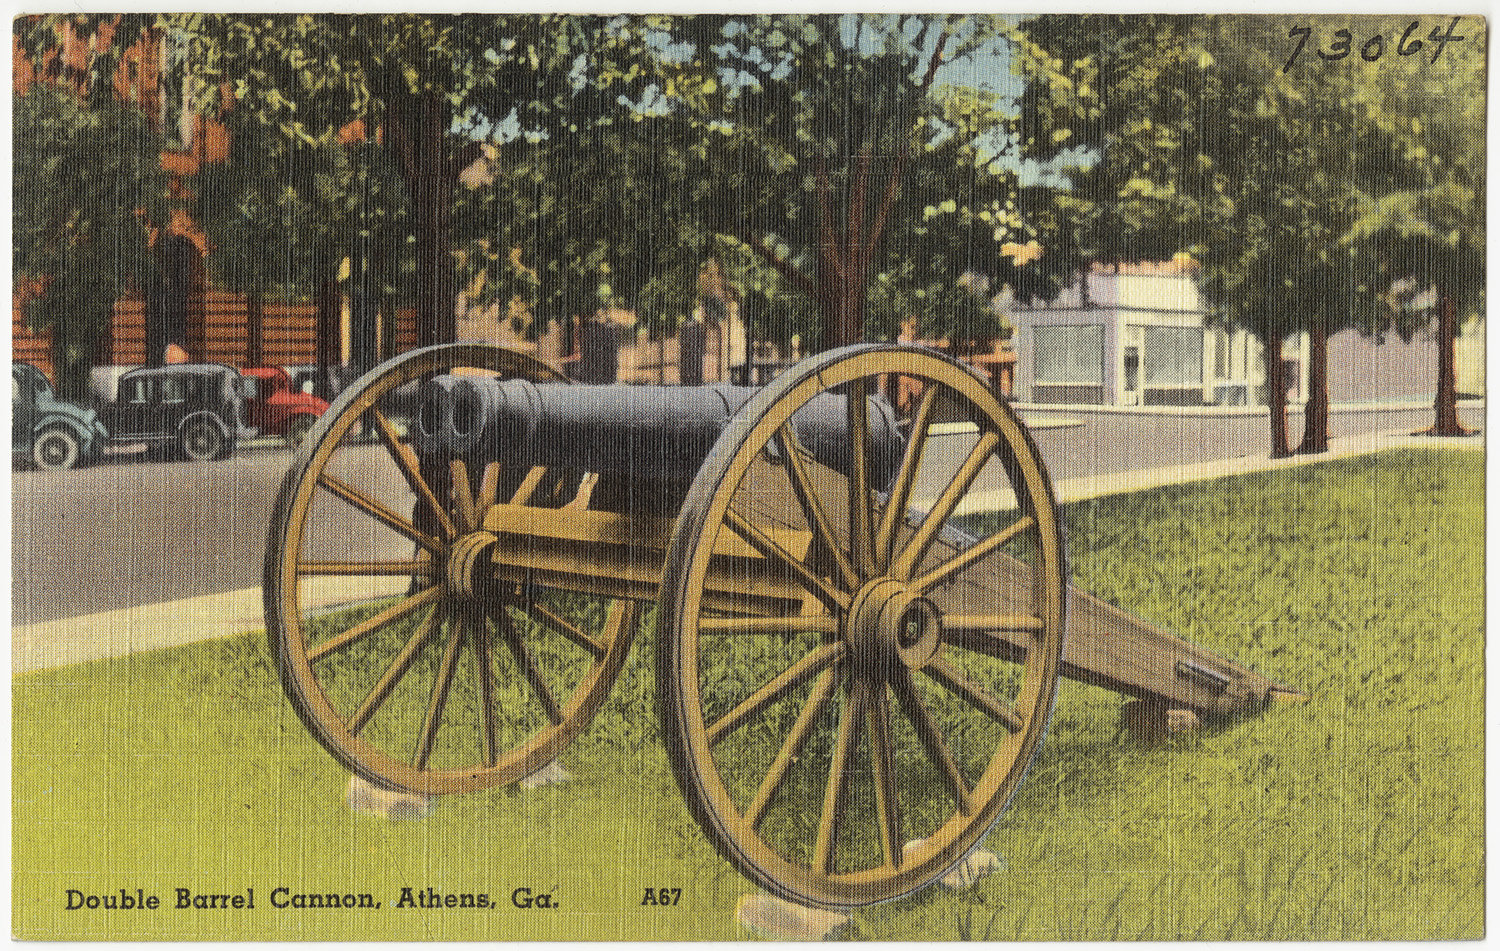 A postcard featuring the cannon.